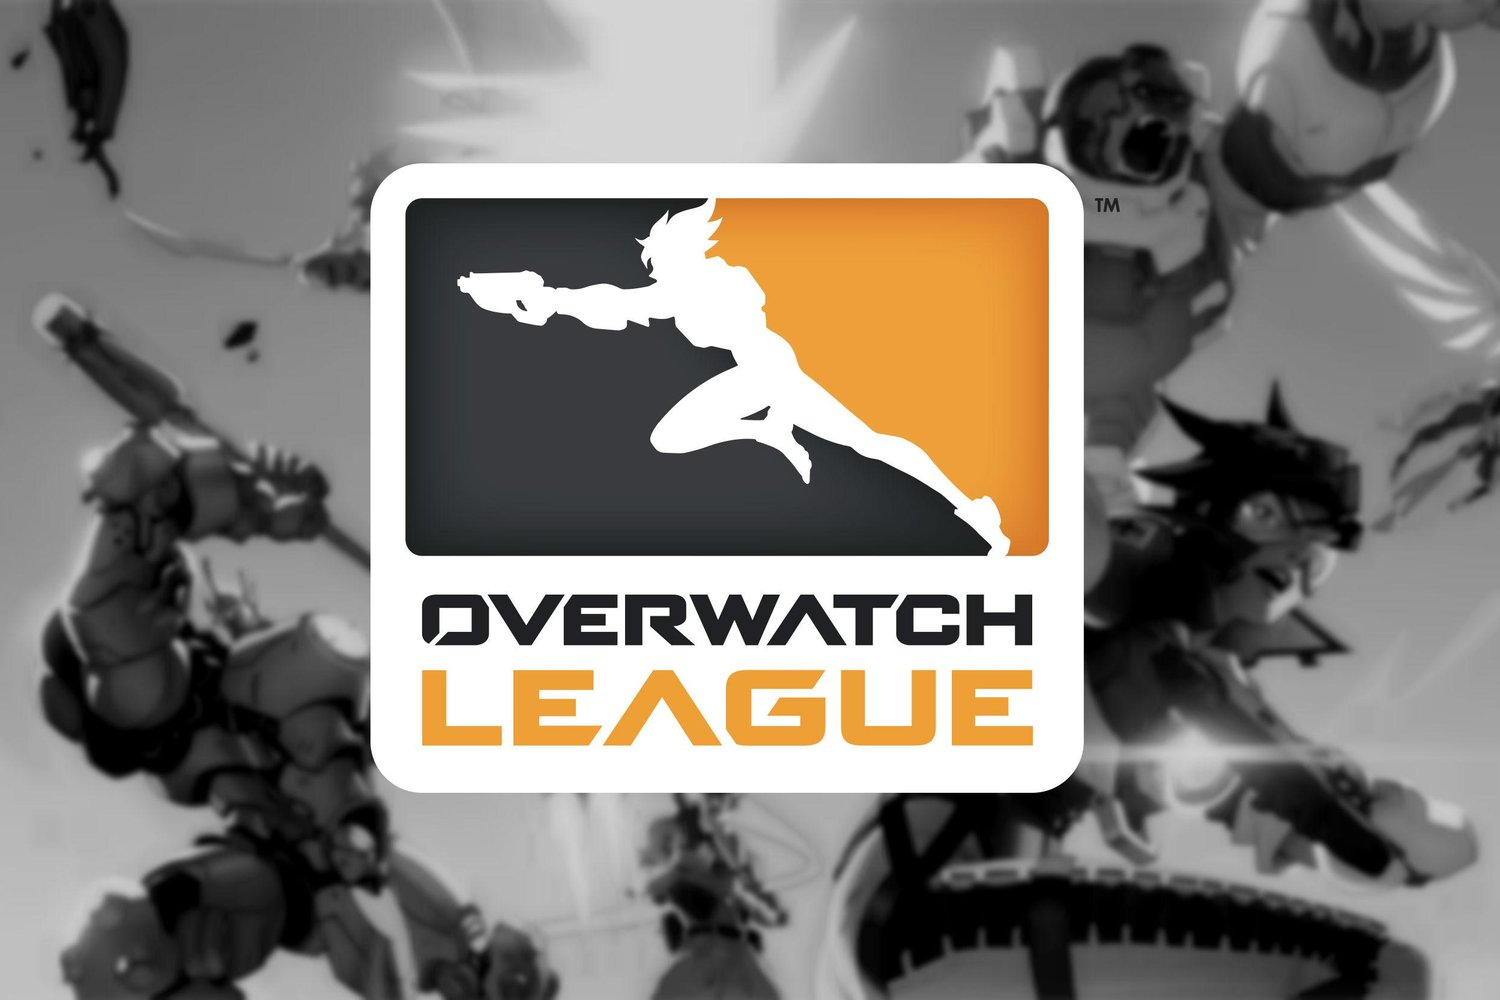 Overwatch League returns on April 4